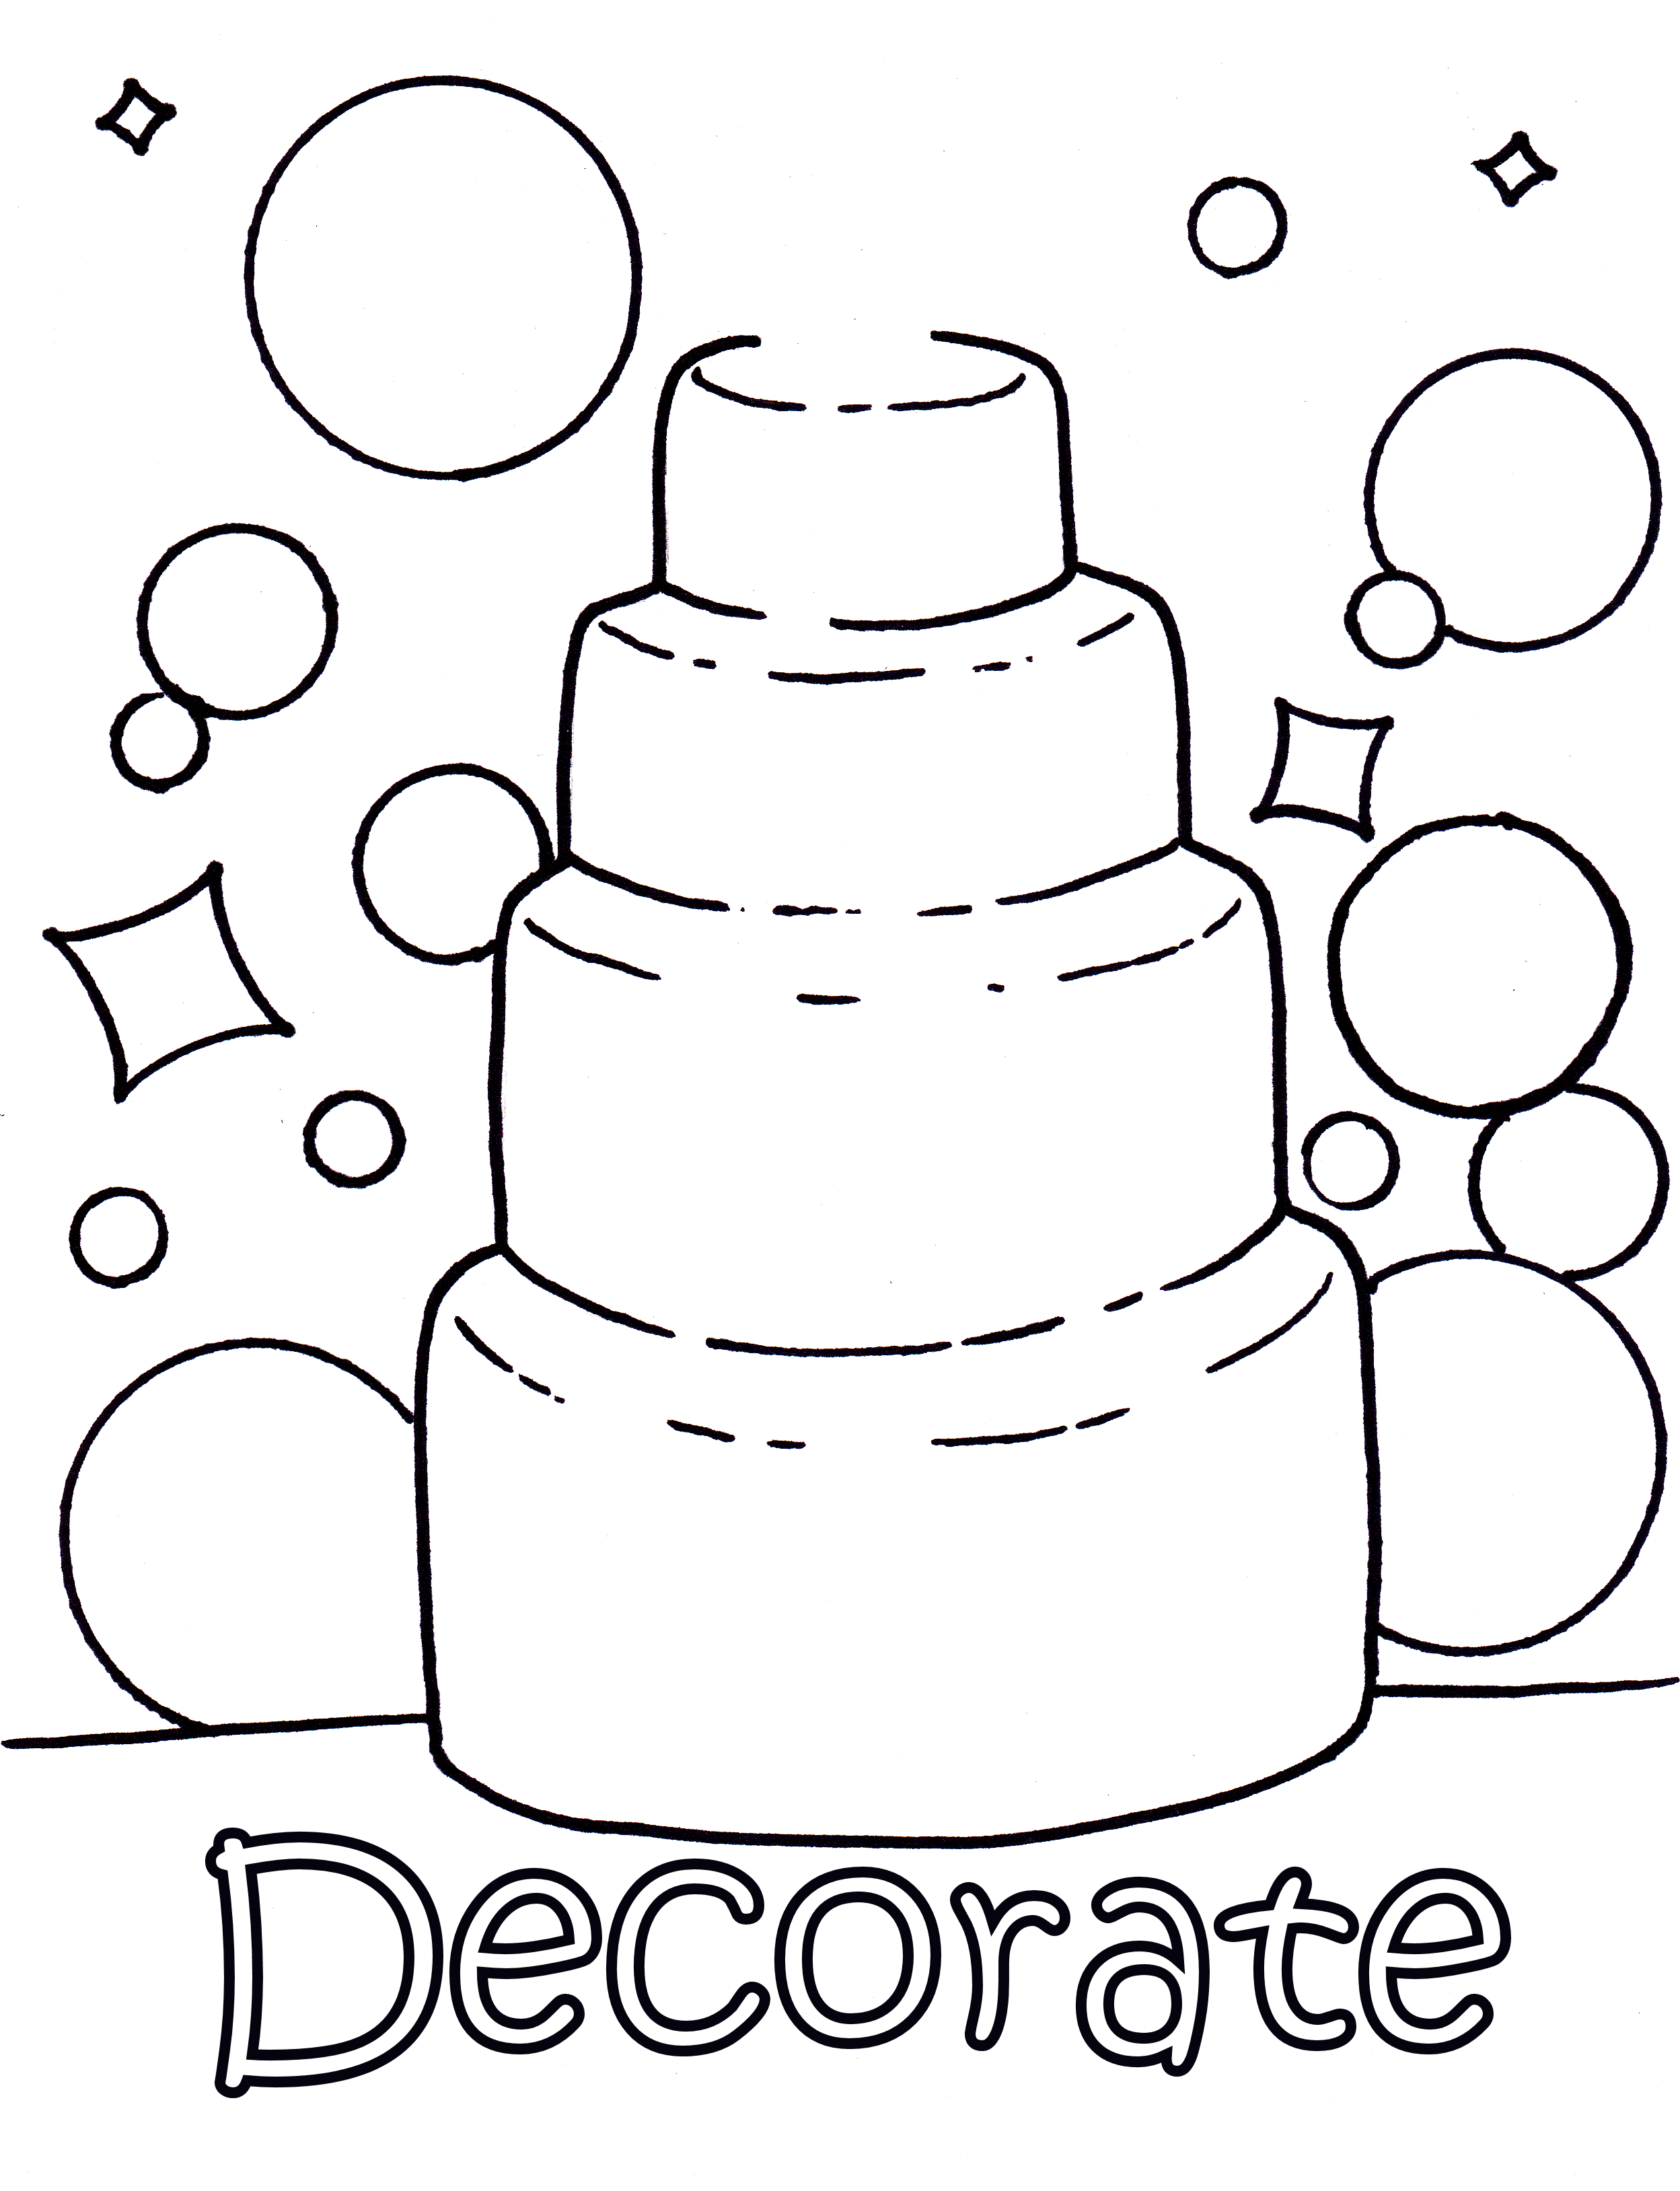 Coloring Picture Wedding Cake Colouring Pages Wedding Coloring Pages For Kids Coloring Activities Wedding Coloring Pages Wedding With Kids Wedding Activities